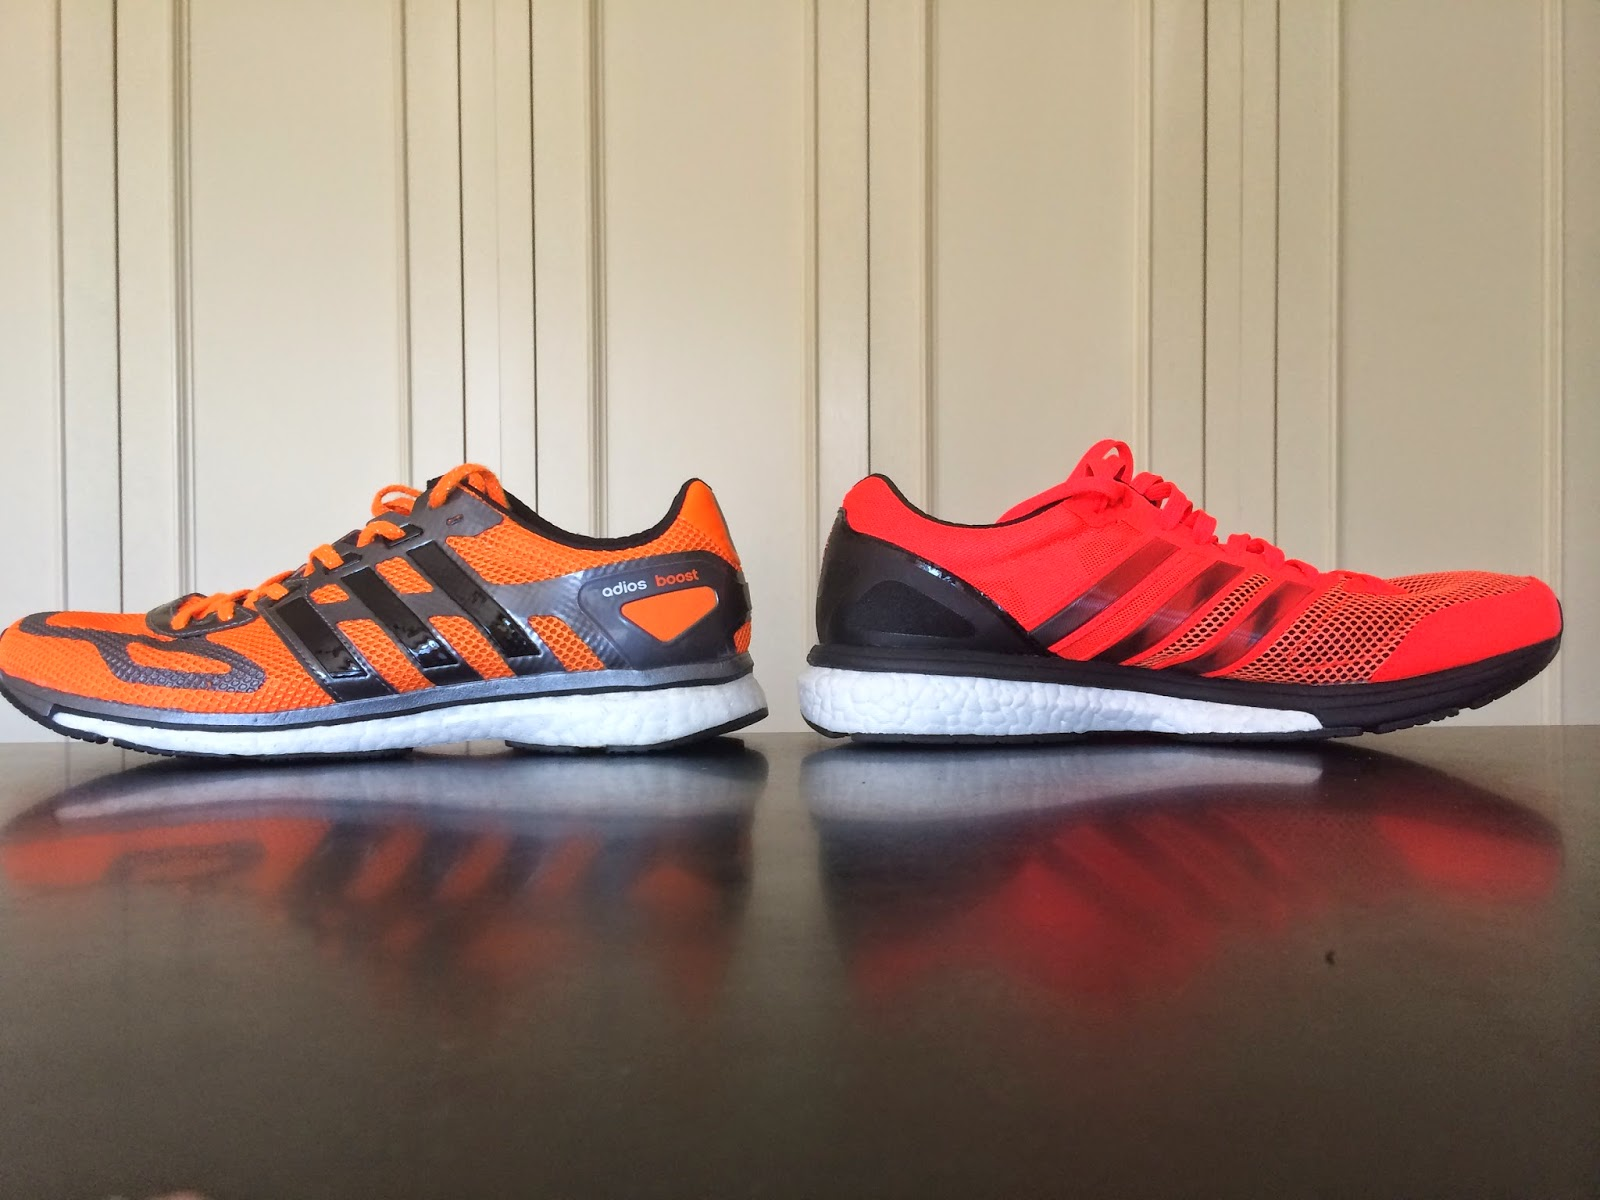 ... adios Boost (left) Boston Boost (right)  adidas Adizero ... de16d217f